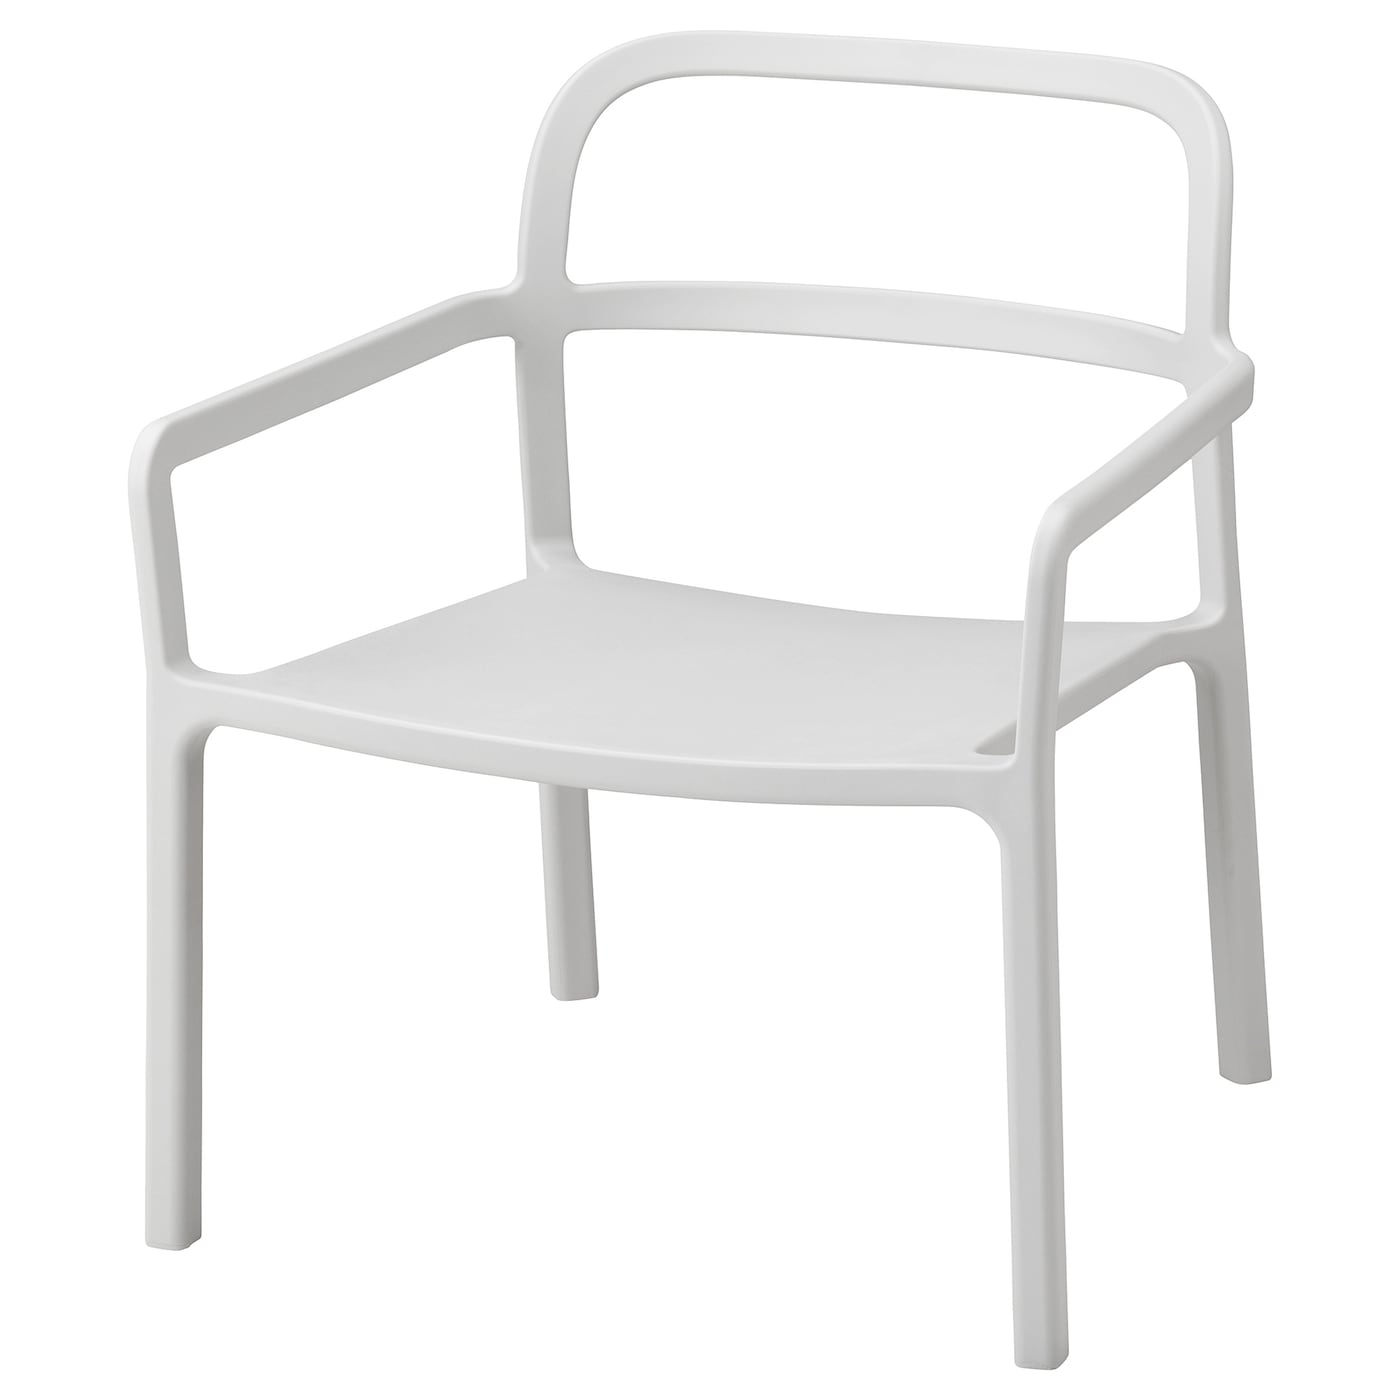 IKEA YPPERLIG armchair, in/outdoor Suitable for outdoor use as well.